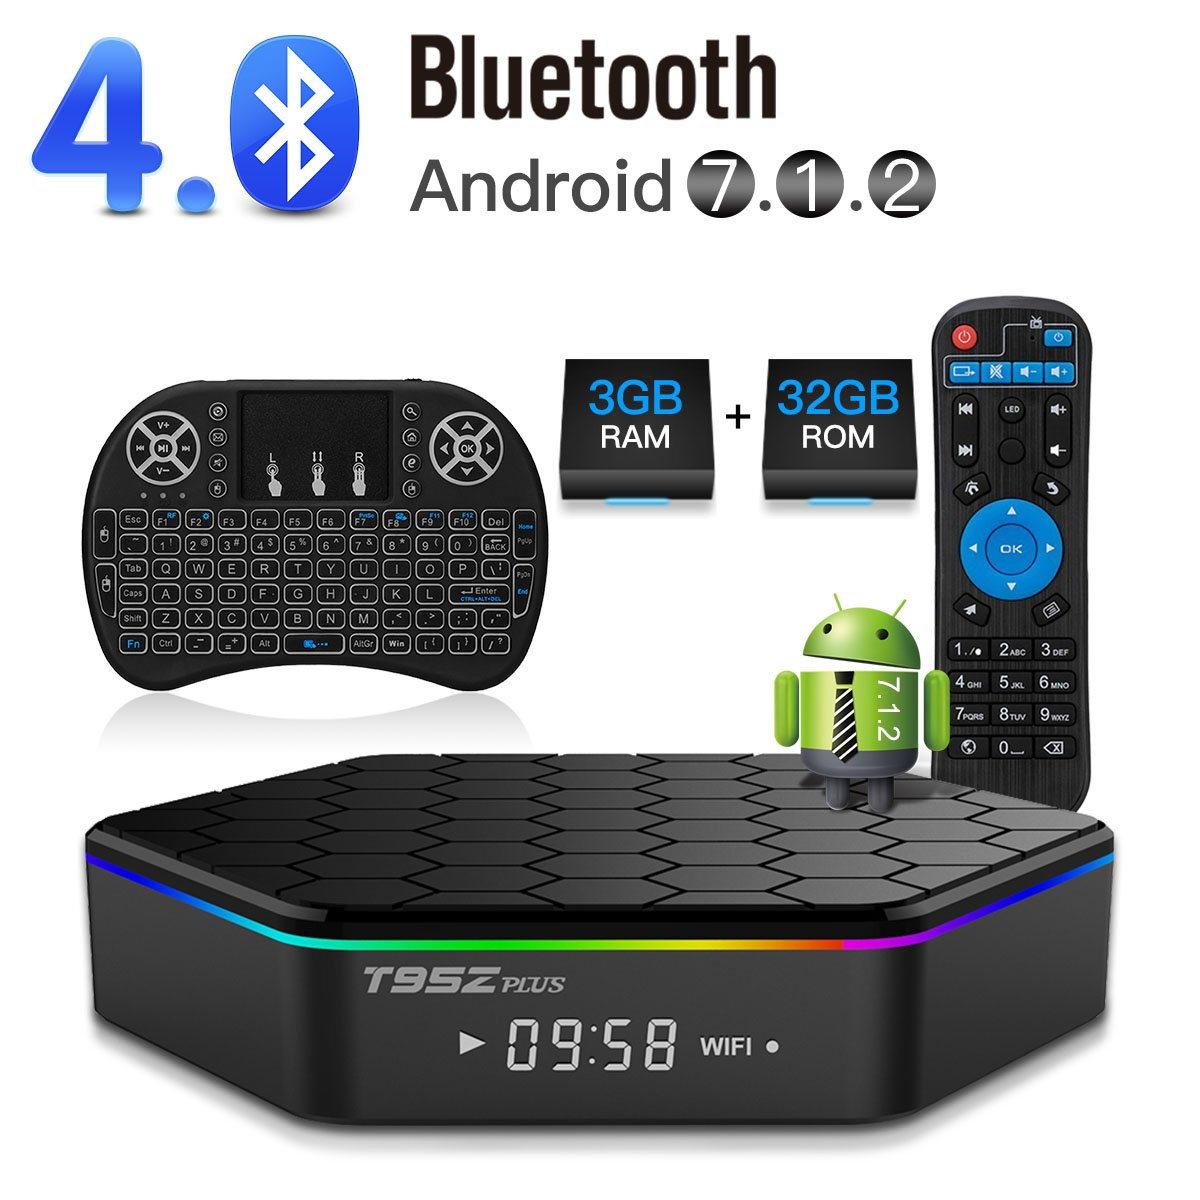 YAGALA T95Z Plus Android 7.1 TV Box Amlogic S912 Octa Core 3GB/32GB Dual Band WiFi 2.4GHz/5.0GHz 4K HD TV Box with Backlit Mini Wireless Keyboard by YAGALA (Image #1)